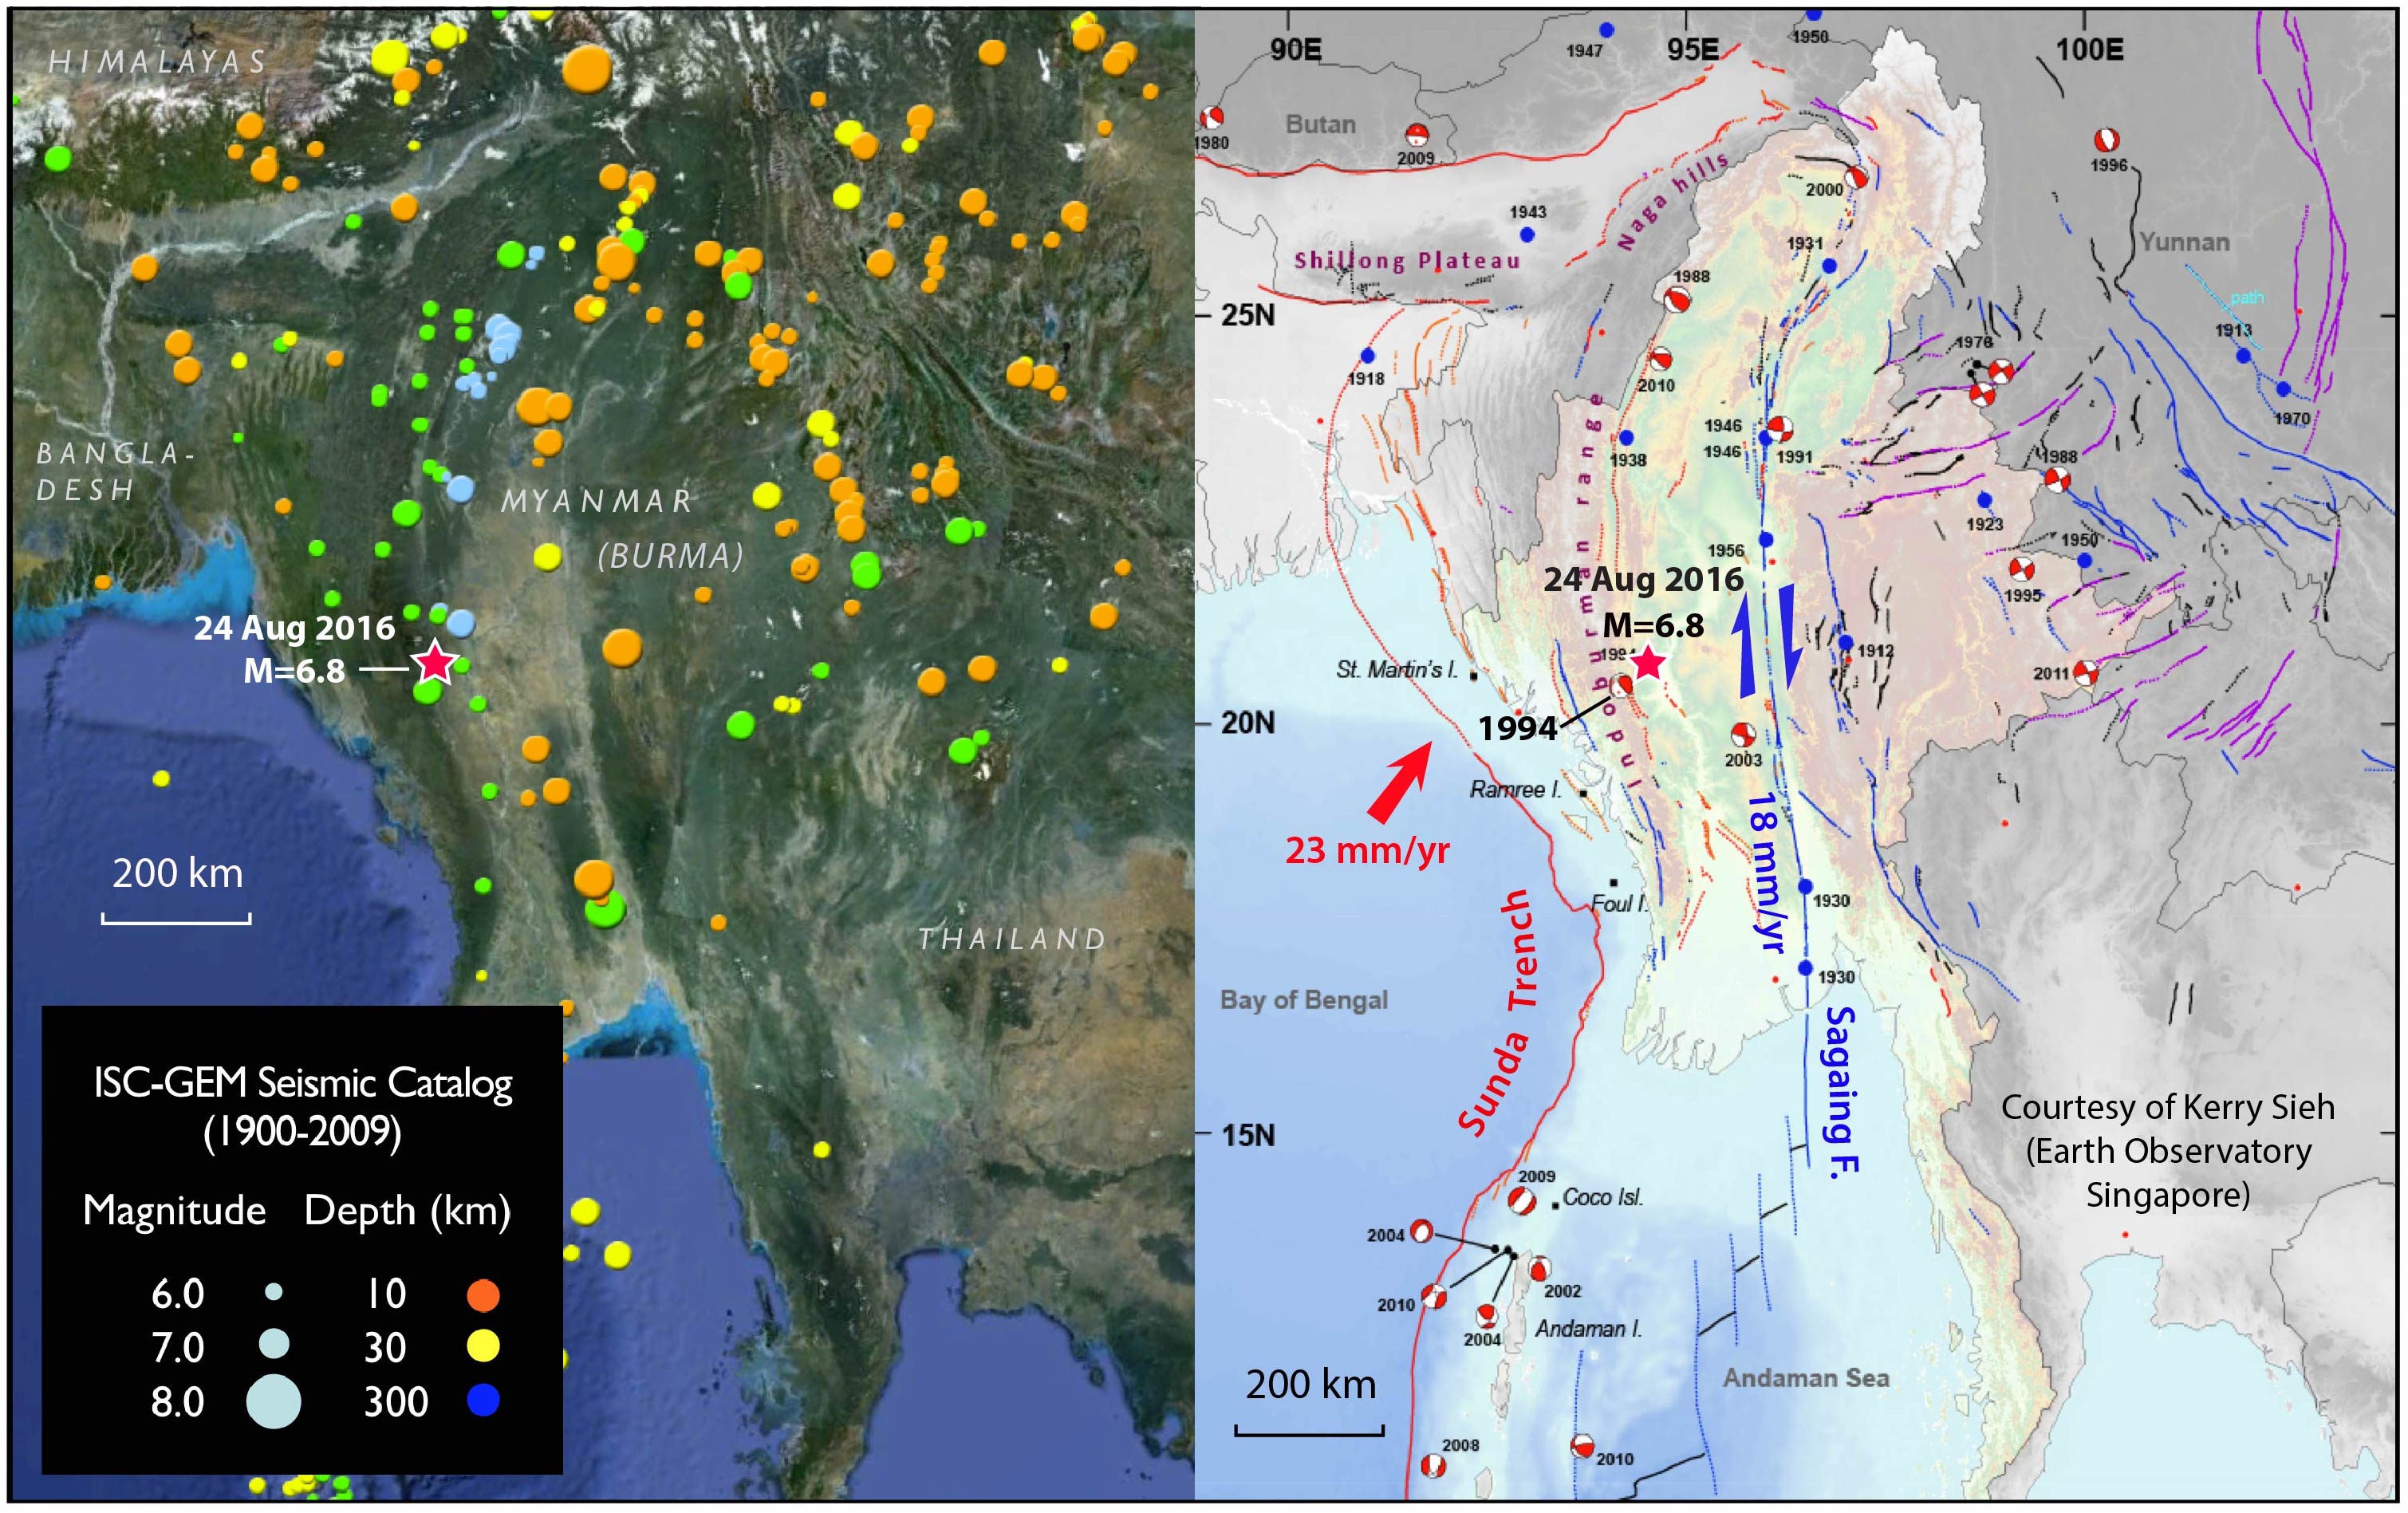 The ISC-GEM seismic catalog (left) and regional tectonic map (right) of the Burma region, with today's earthquake labeled